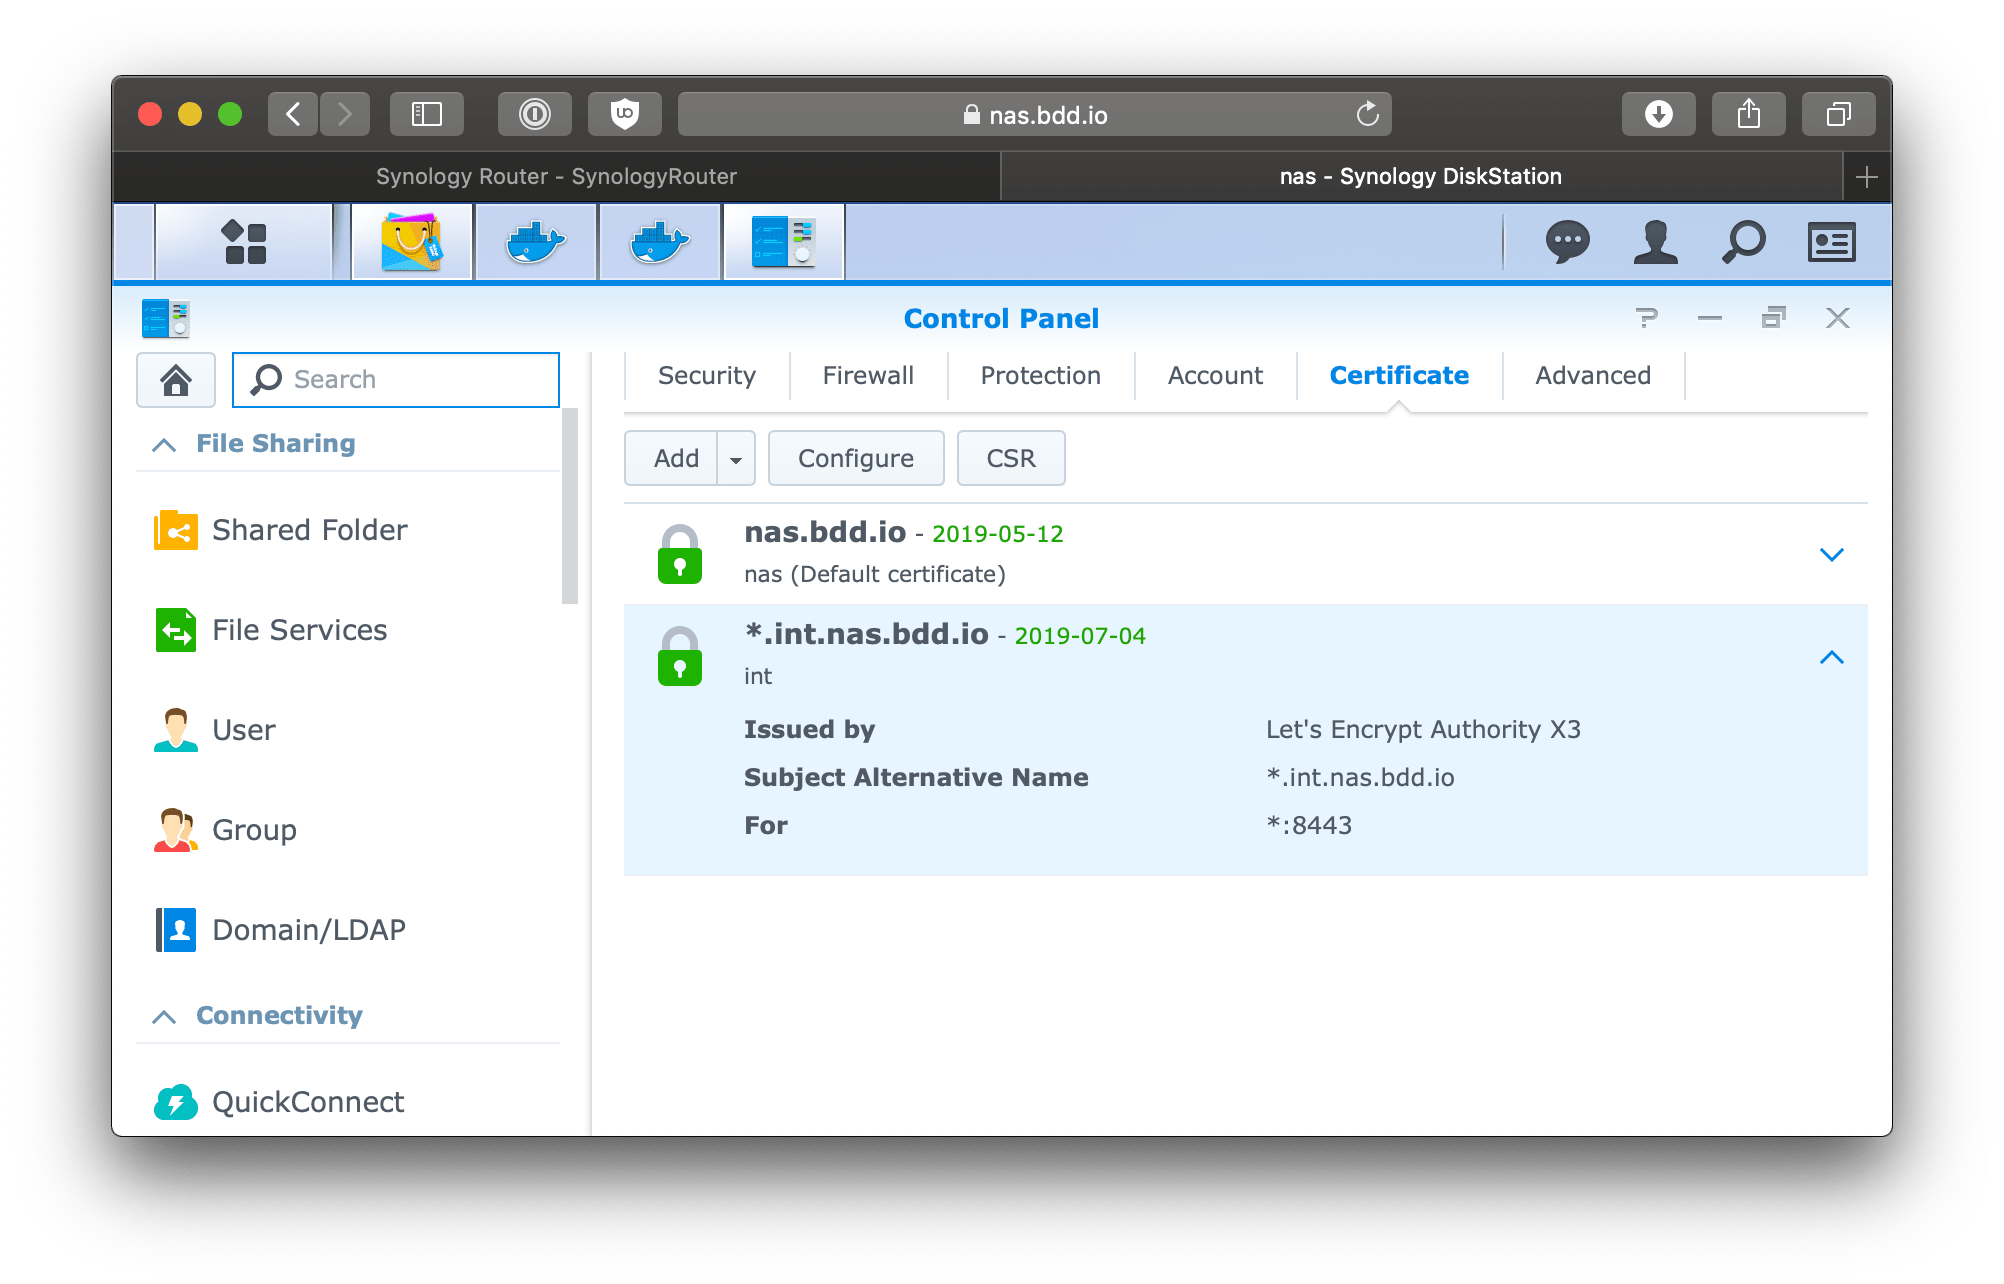 Synology assign wildcard certificate